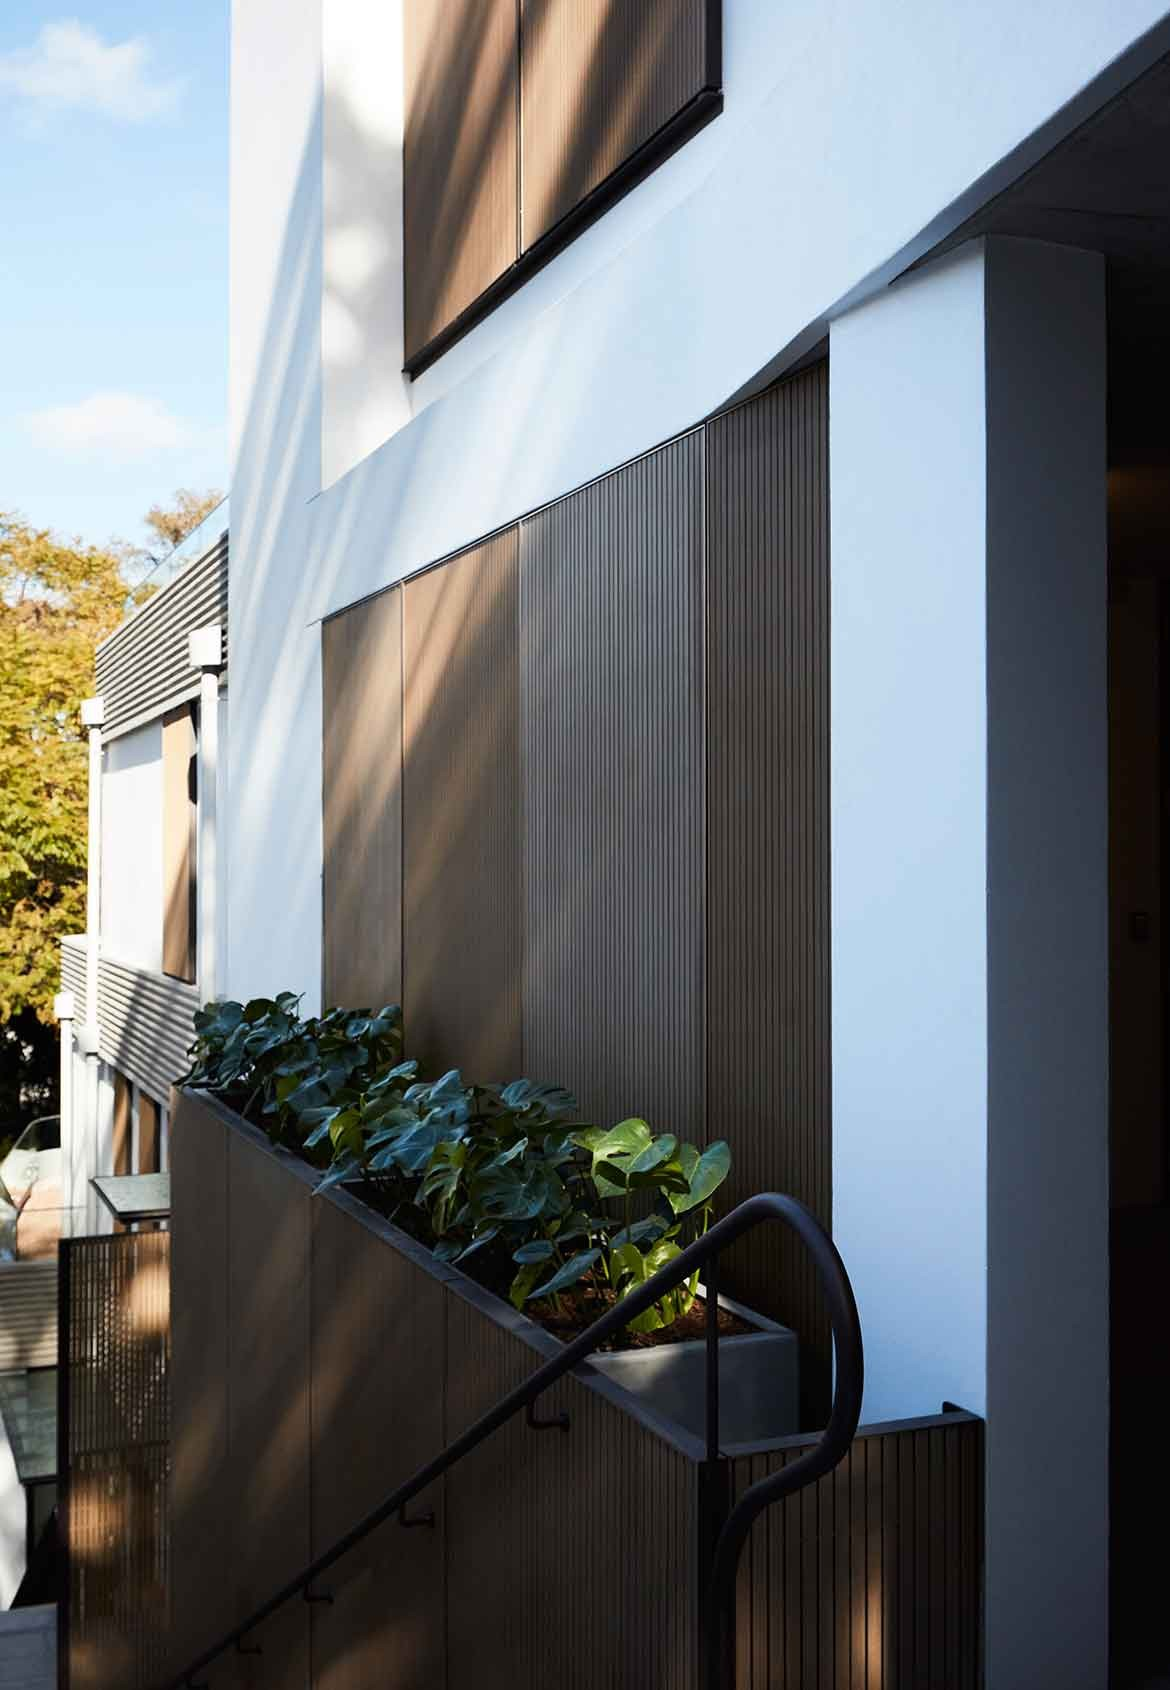 Bellevue Hill Apartments Photography by Prue Roscoe exterior details